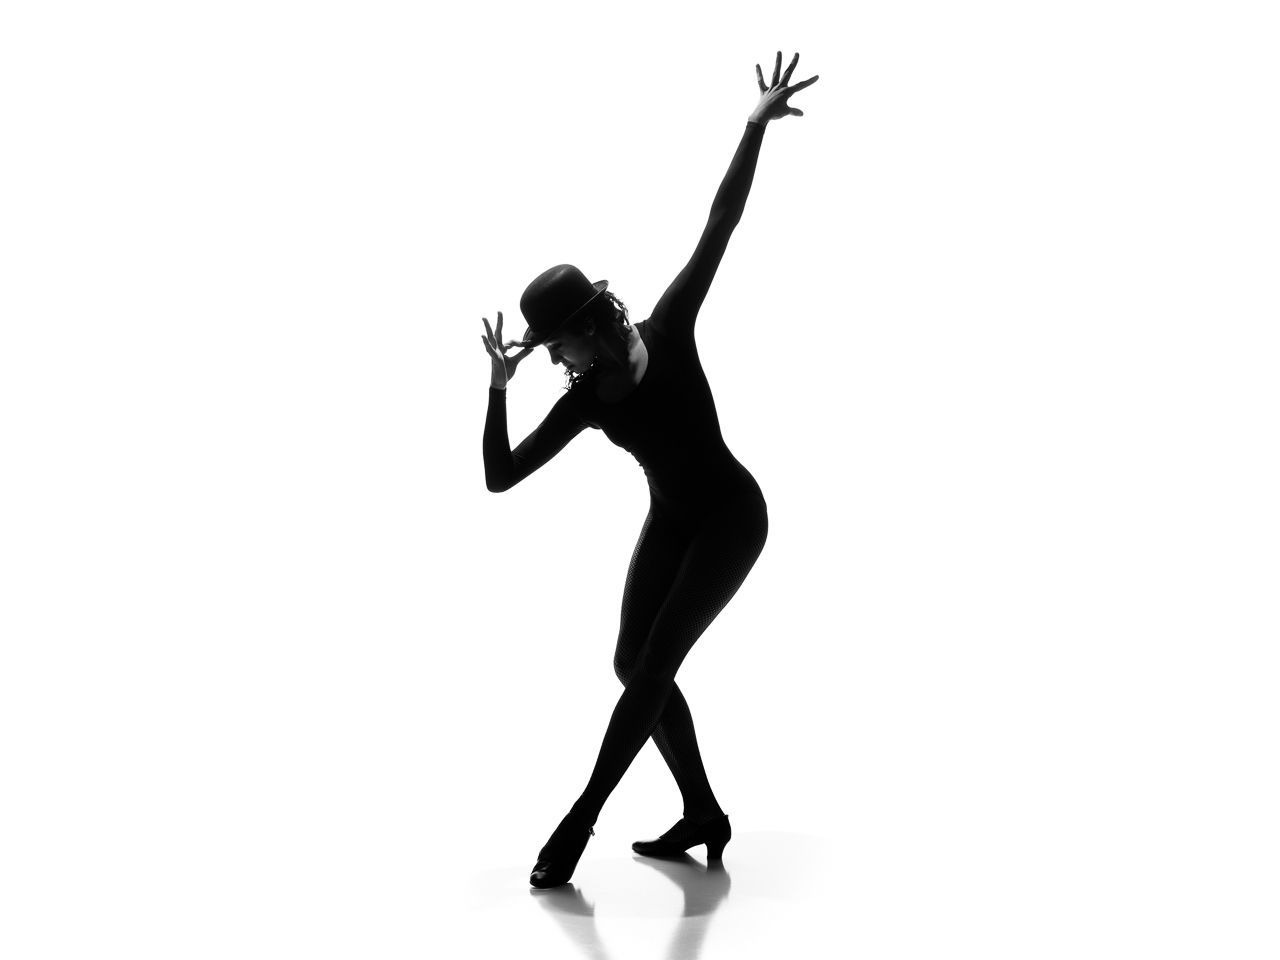 dancer silhouette | Dancer Silhouettes | Jazz dance ...